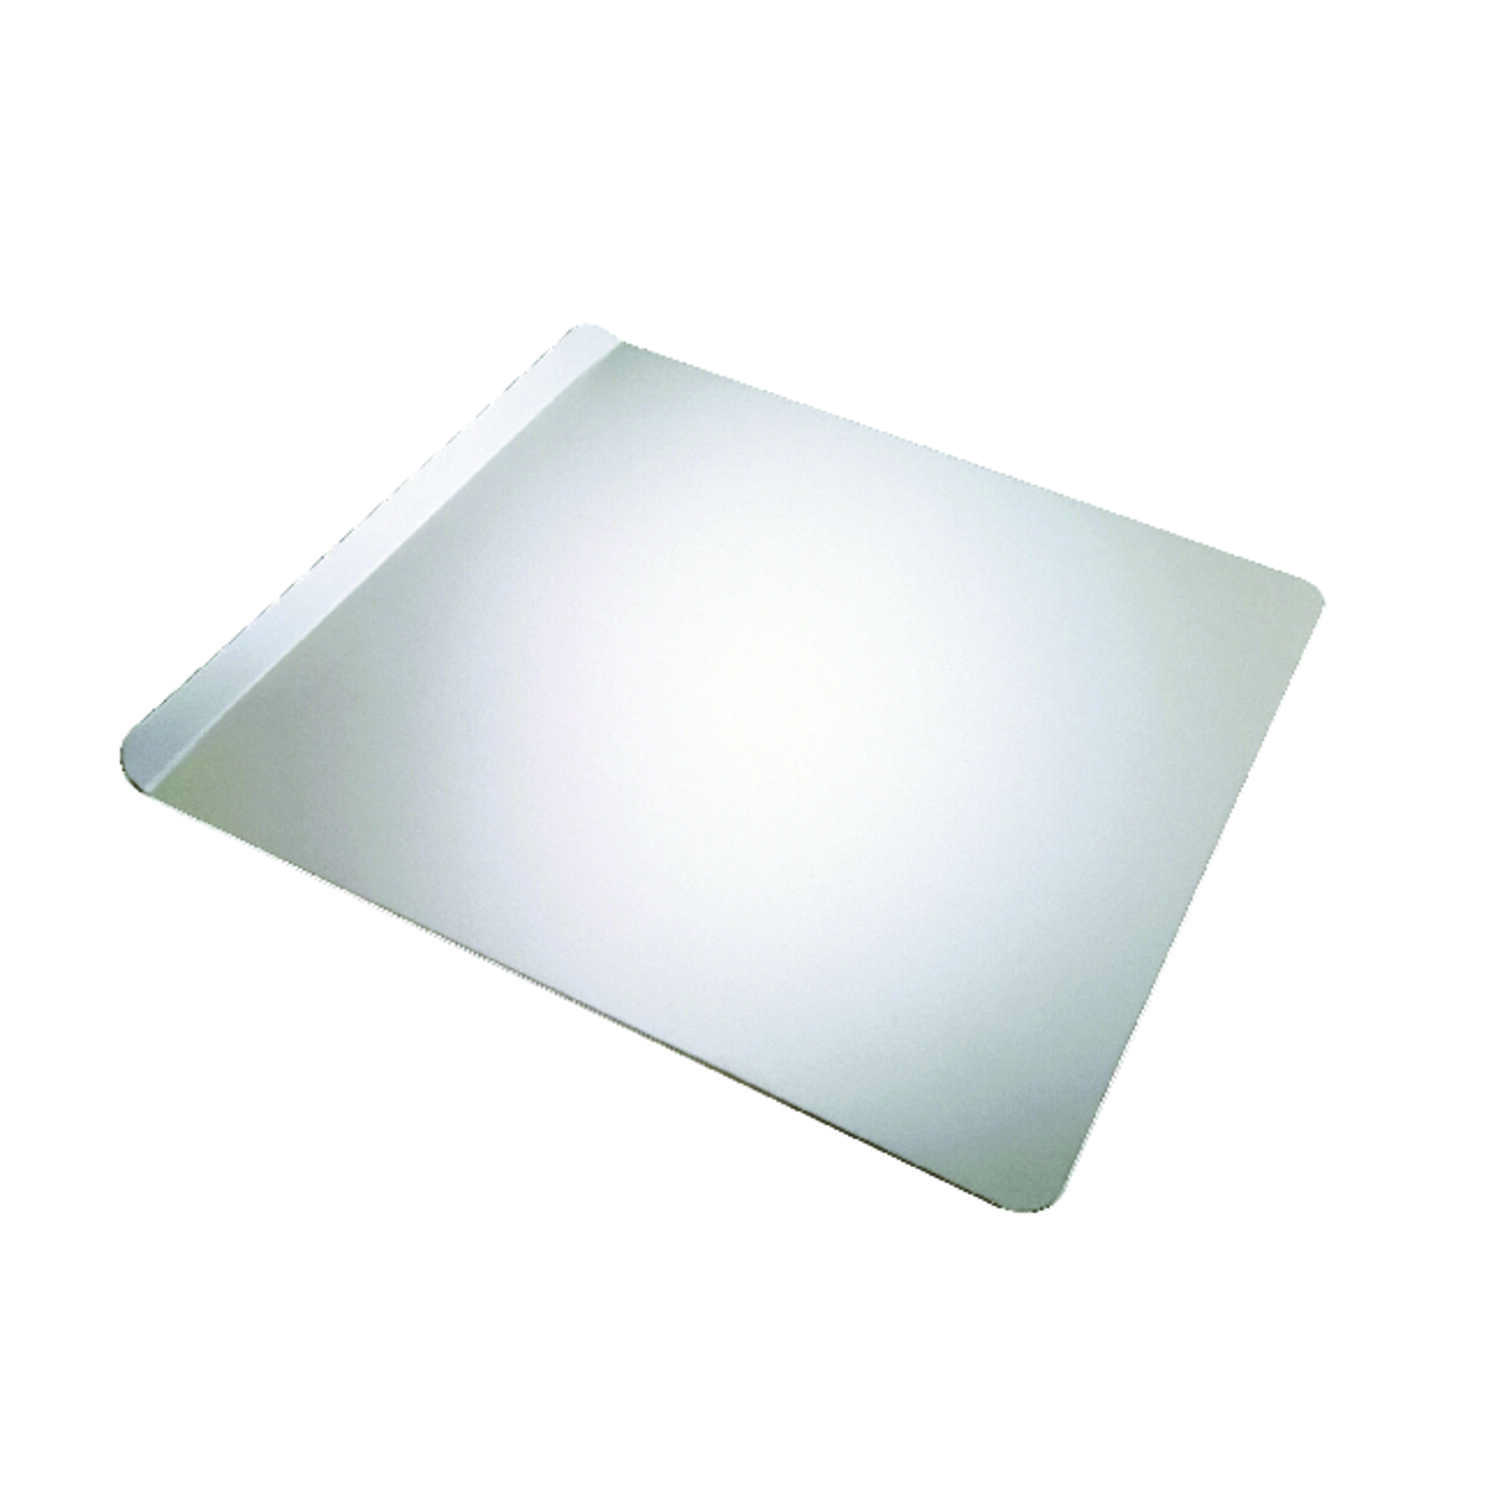 Airbake  12 in. W x 14 in. L Baking Sheet